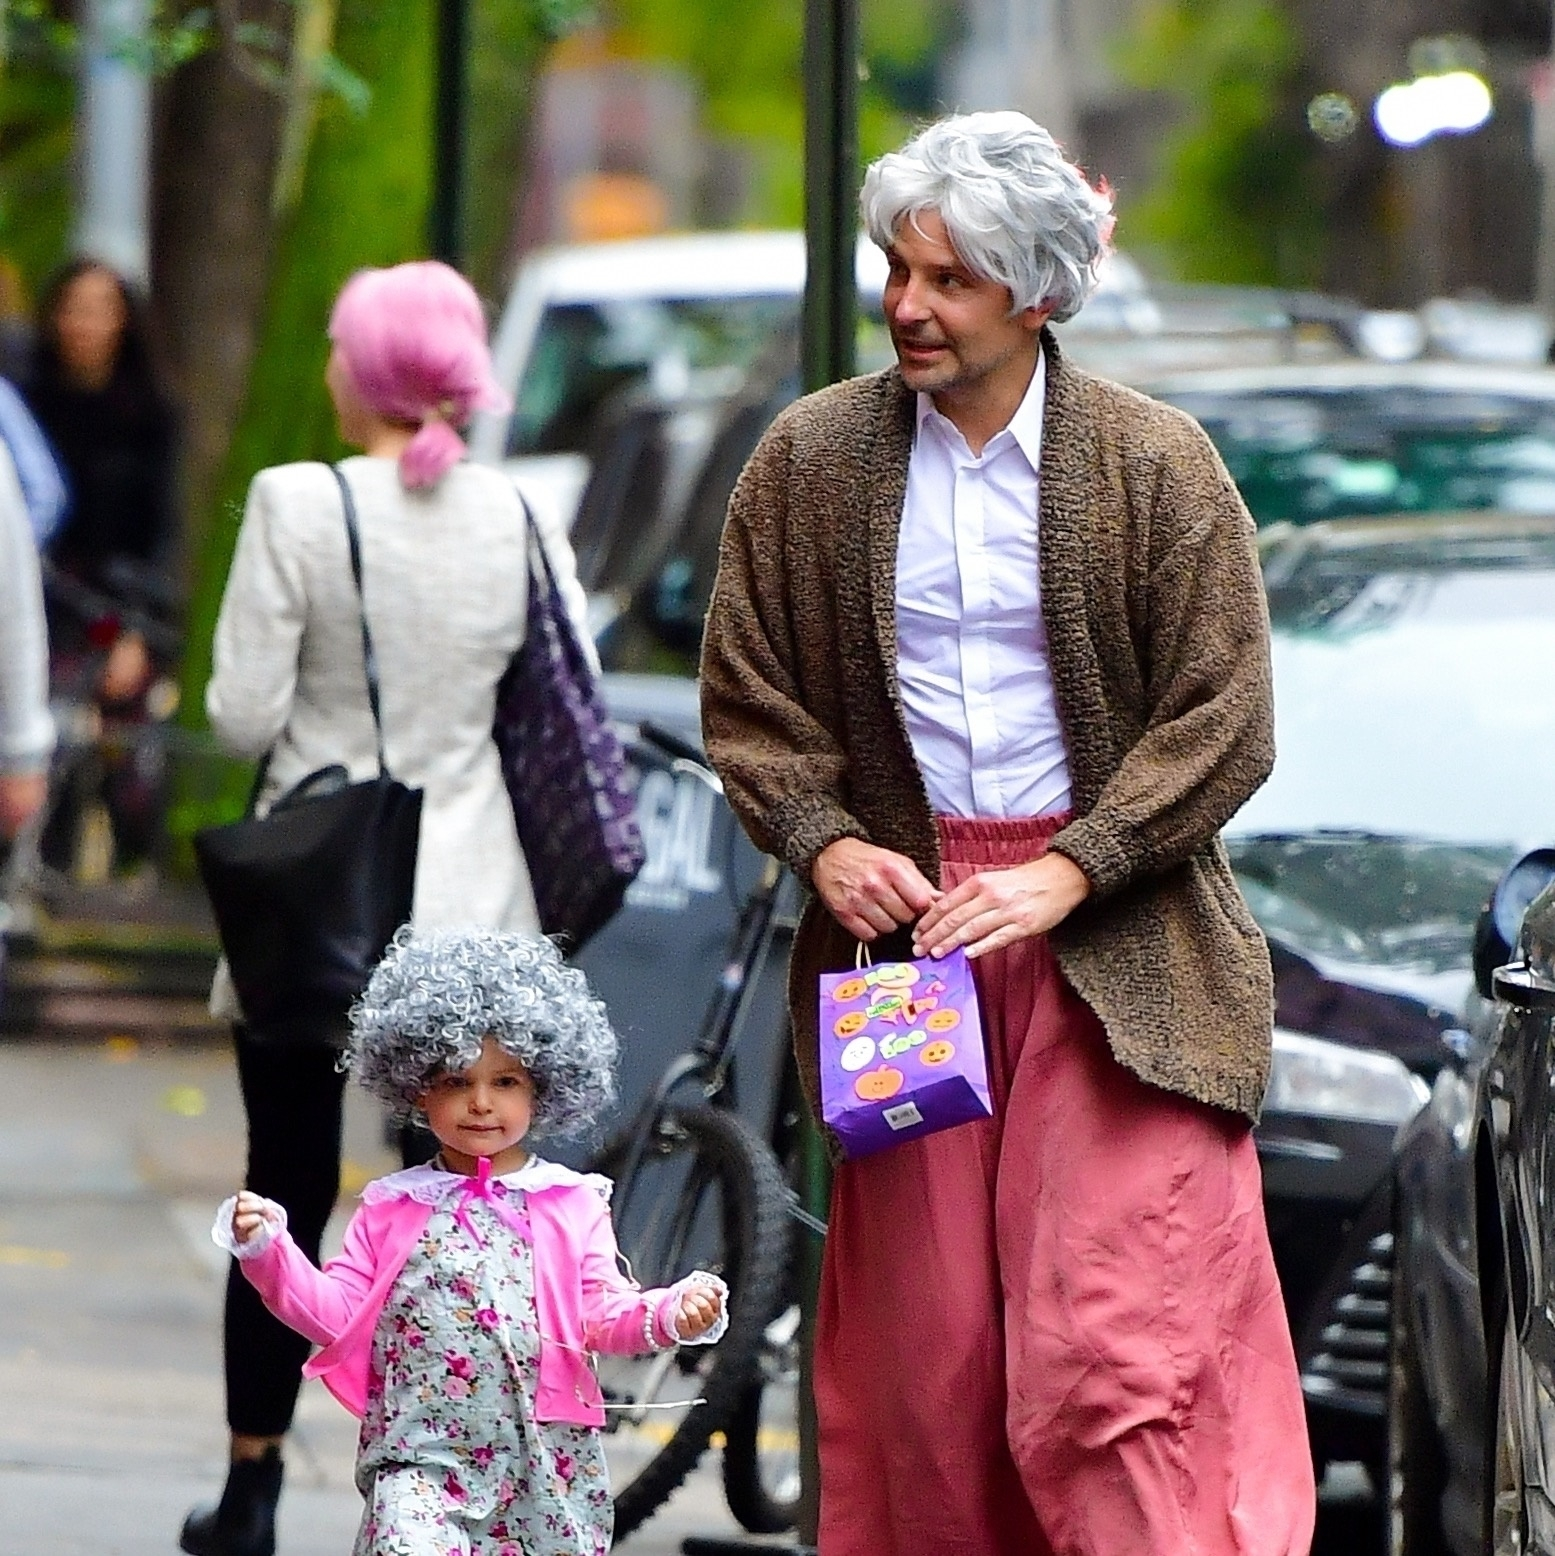 New York, NY  - *PREMIUM-EXCLUSIVE*  - Actor Bradley Cooper and daughter Lea channel their inner Robin Williams dressed as Mrs. Doubtfire to trick or treat in New York.  *UK Clients - Pictures Containing Children Please Pixelate Face Prior To Publication*, Image: 480269721, License: Rights-managed, Restrictions: *DO NOT ALTER SET OR CROP PHOTOS*, Model Release: no, Credit line: PapCulture / BACKGRID / Backgrid USA / Profimedia